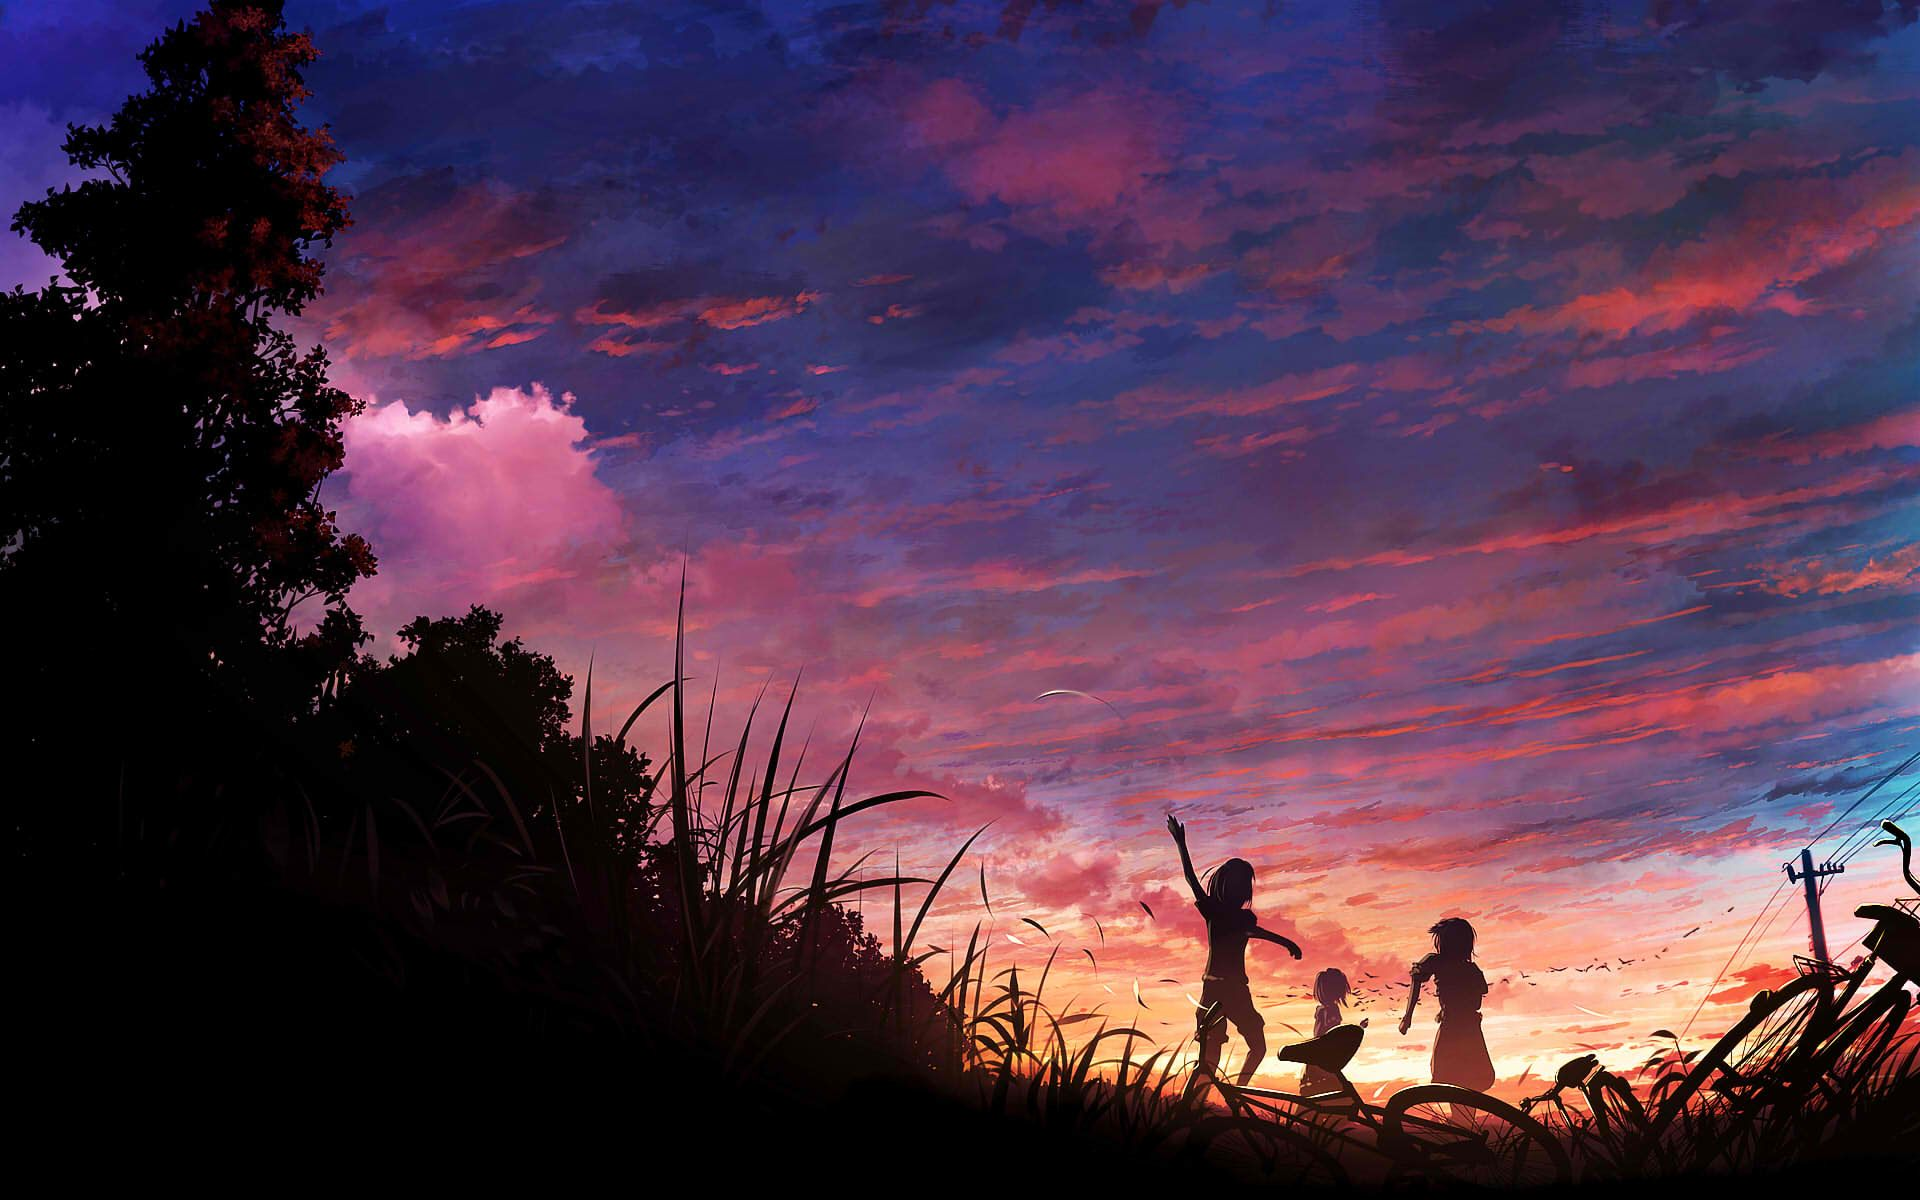 Pin by Sally on Japanese Anime Scenery Arts Anime